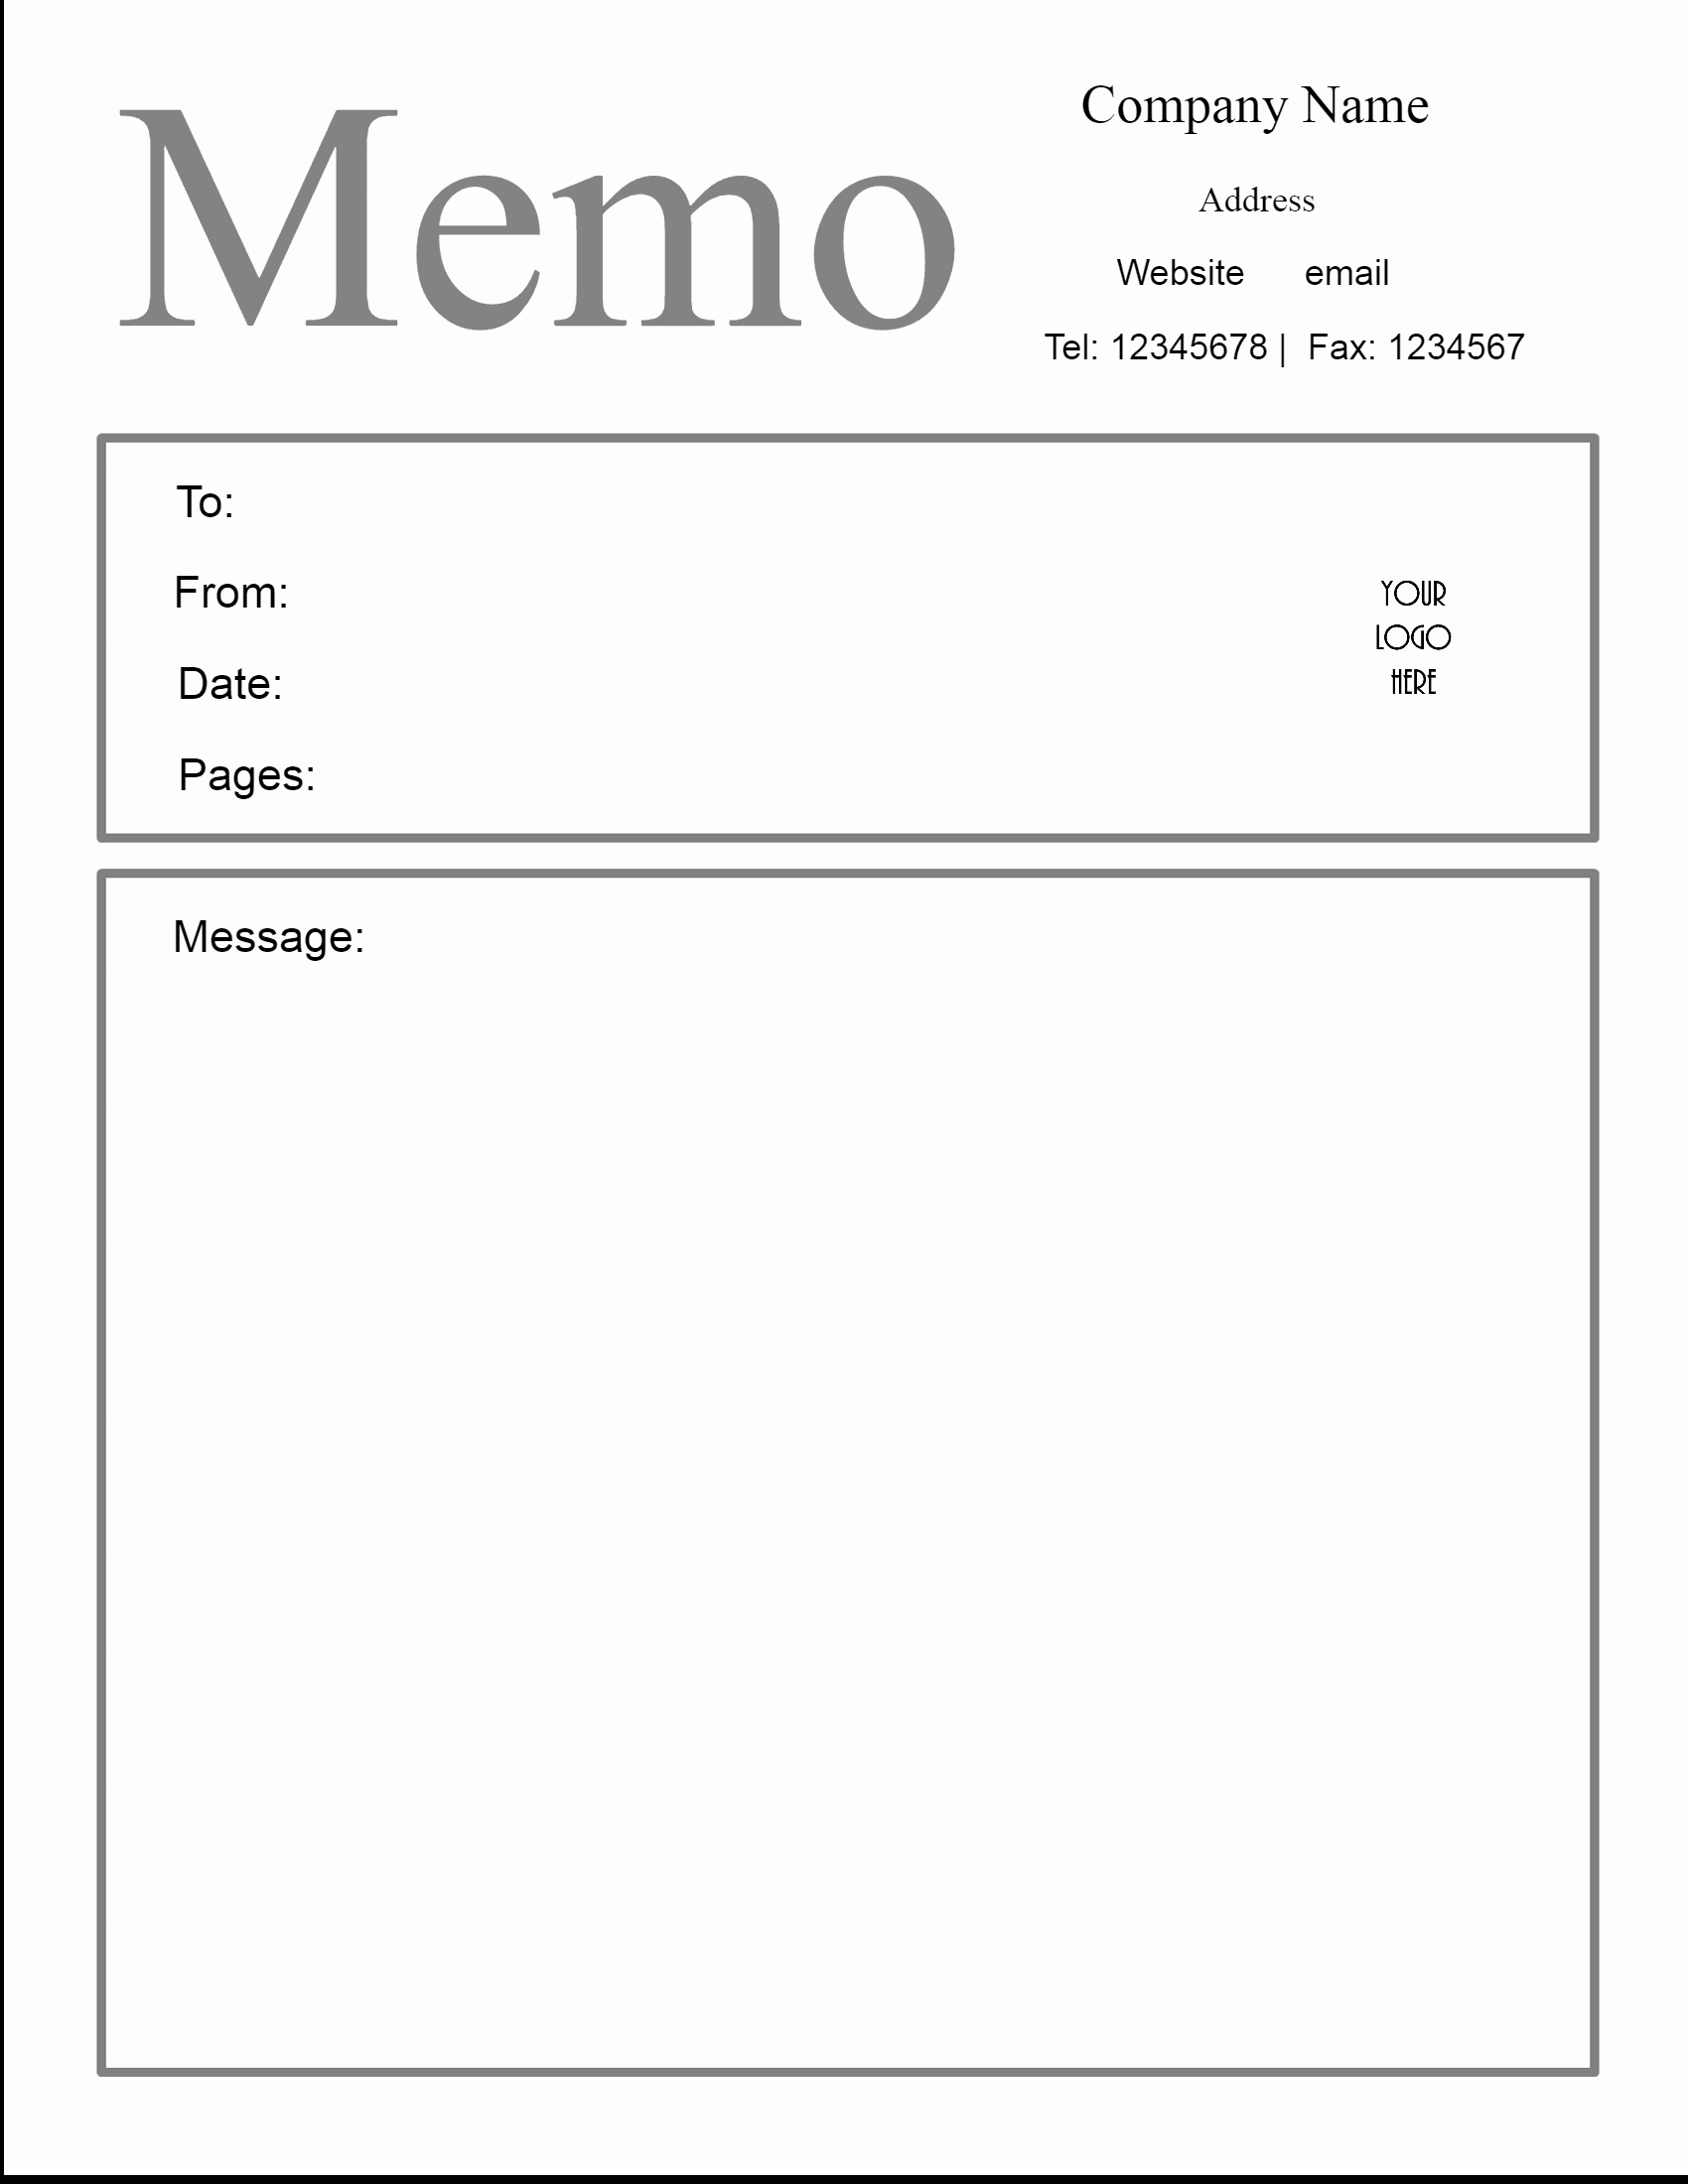 Free Downloadable Templates for Word Inspirational Free Microsoft Word Memo Template